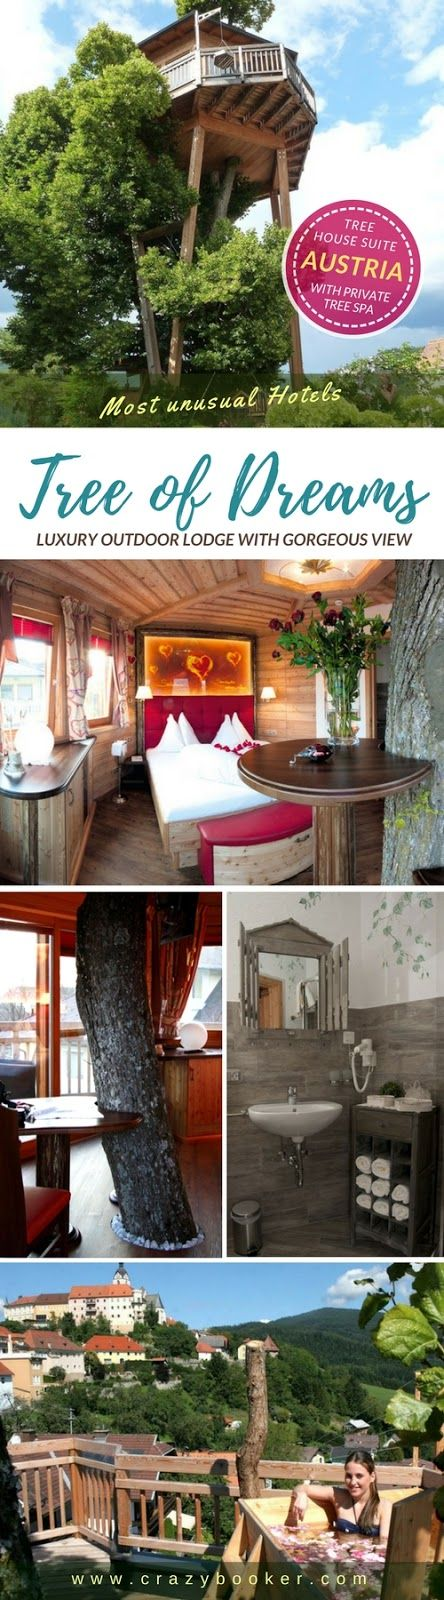 Travel to the Austrian Alps and stay in the 'Tree of Dreams' | This luxurious treehouse turns out to be a cozy hotel suite in a lime tree with gorgeous Karawanken view, ensuite bathroom with running water and private outdoor bathtub on the treetop terrace at 14 metres height | The winter-proof tree house in one of Austria's highest mountain villages can be booked all year round | #travel #austria #treehouse